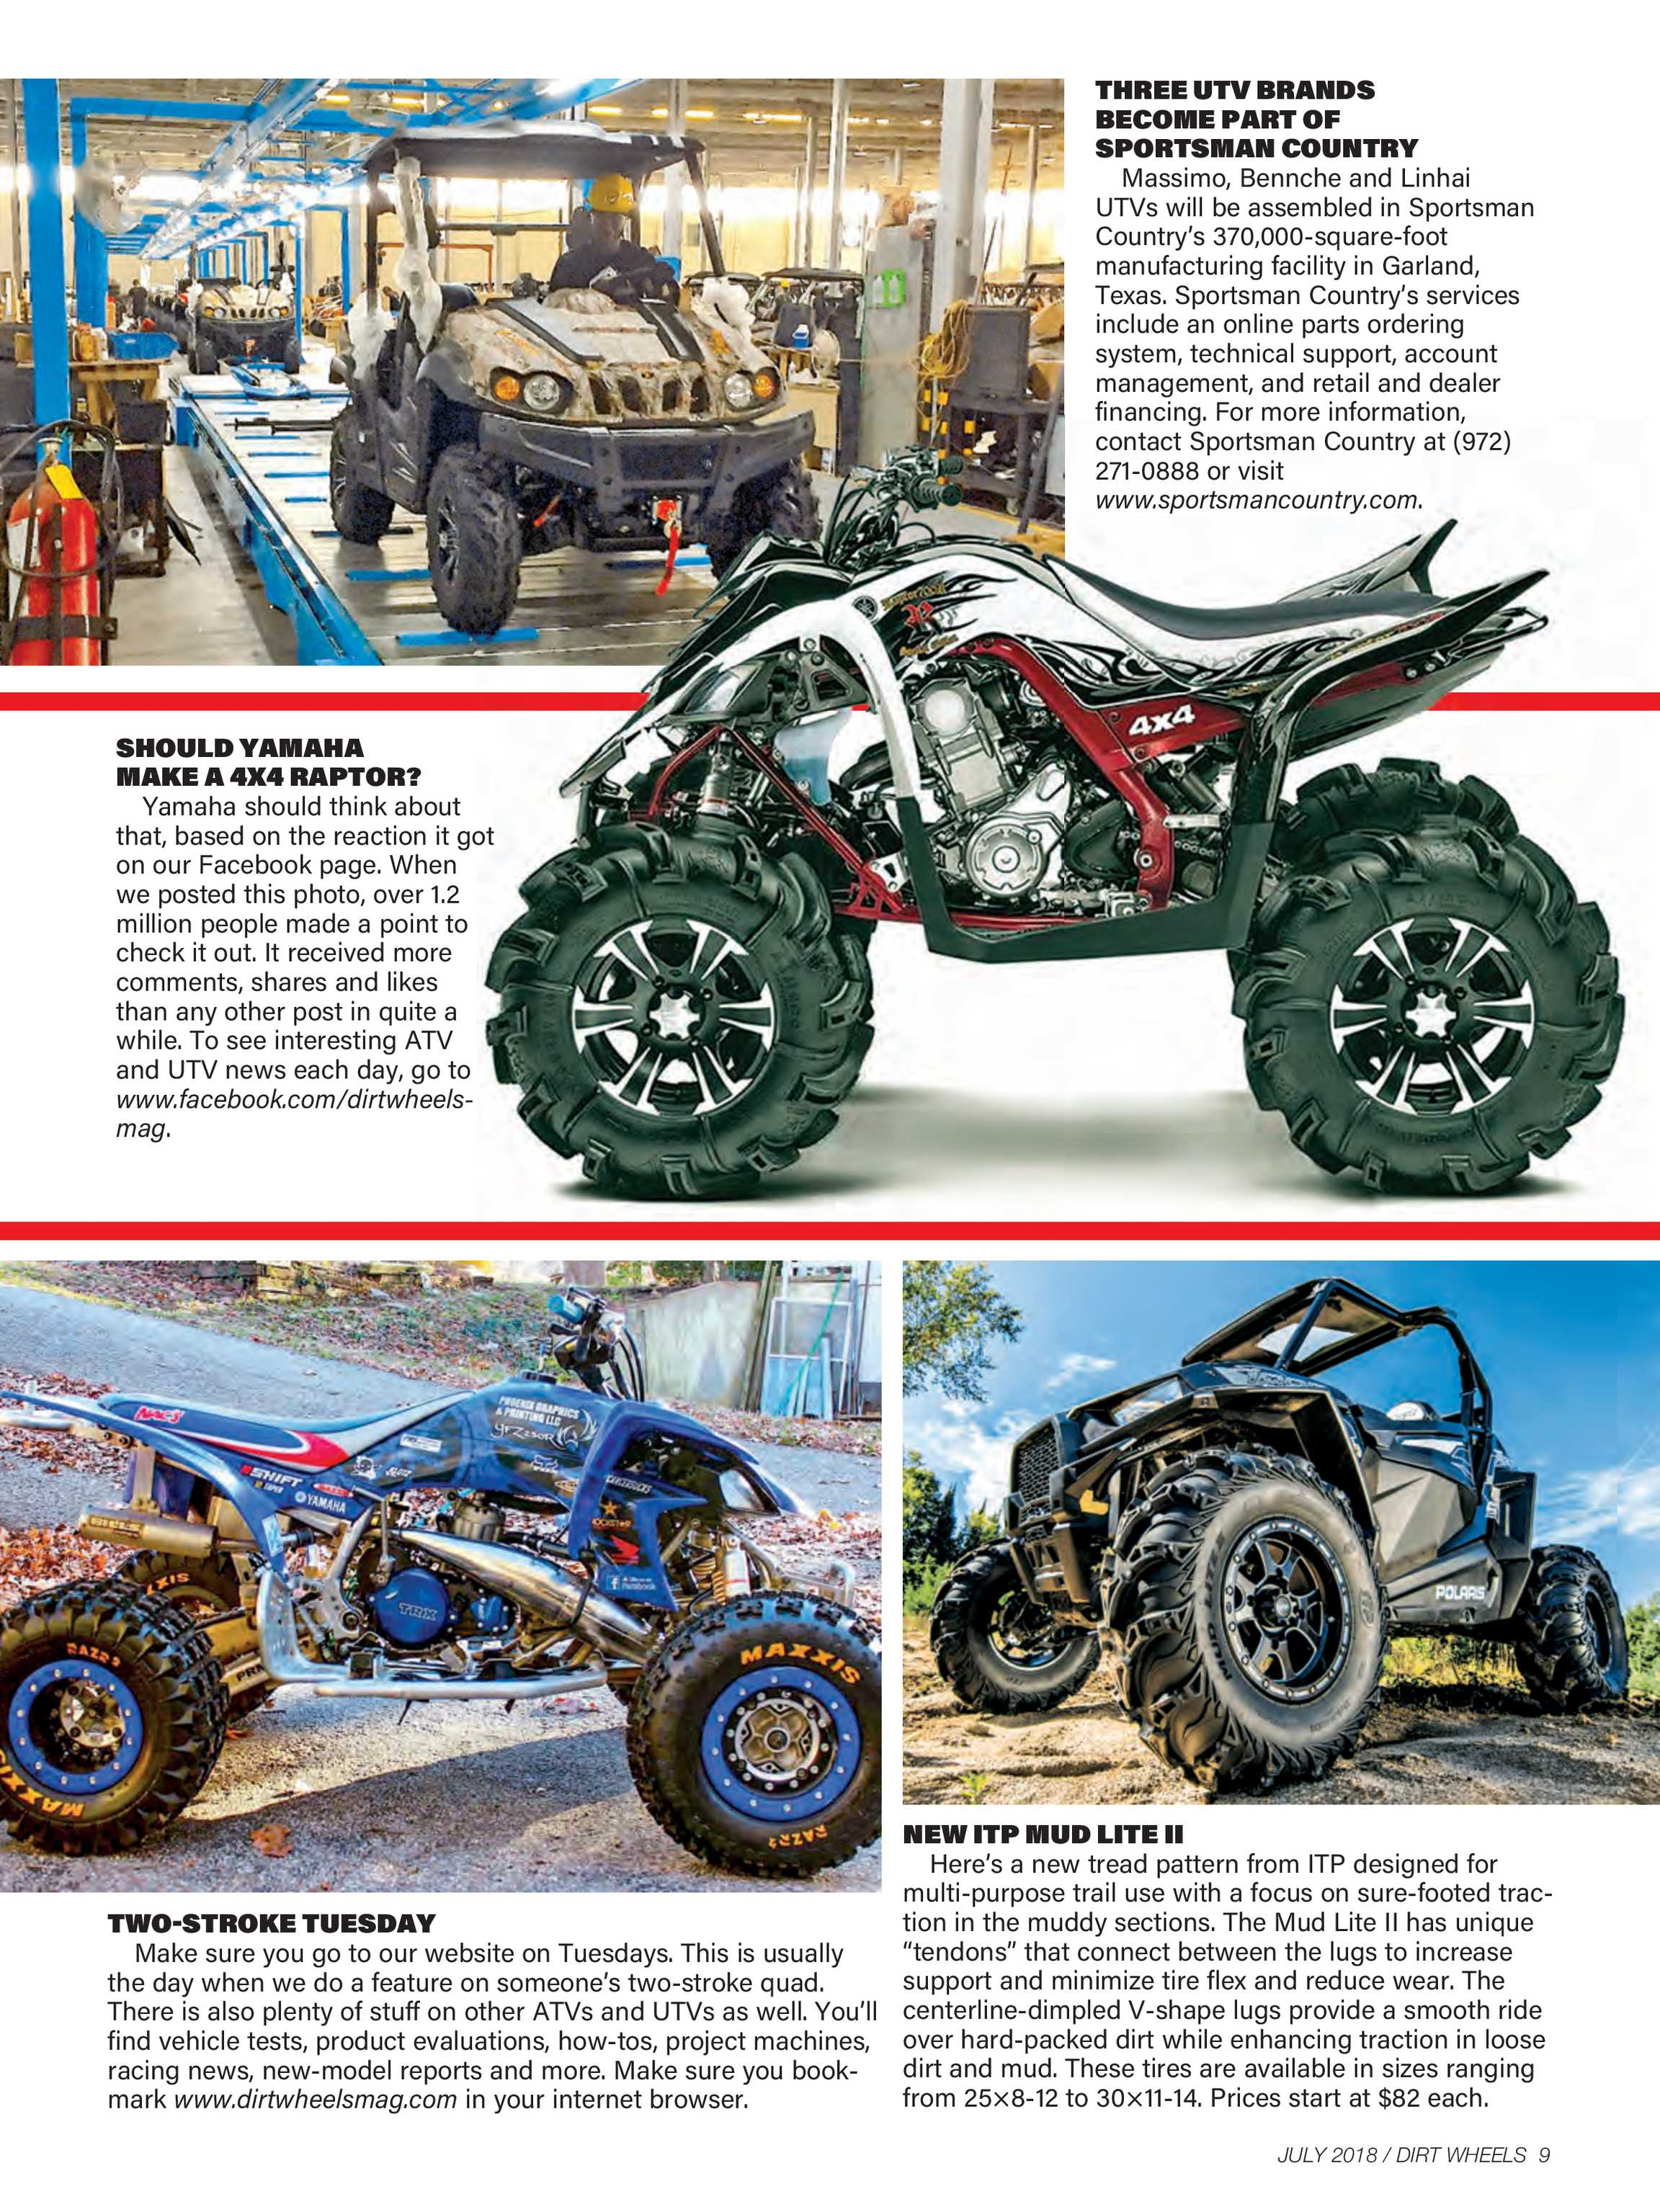 Dirt Wheels - July 2018 - page 8